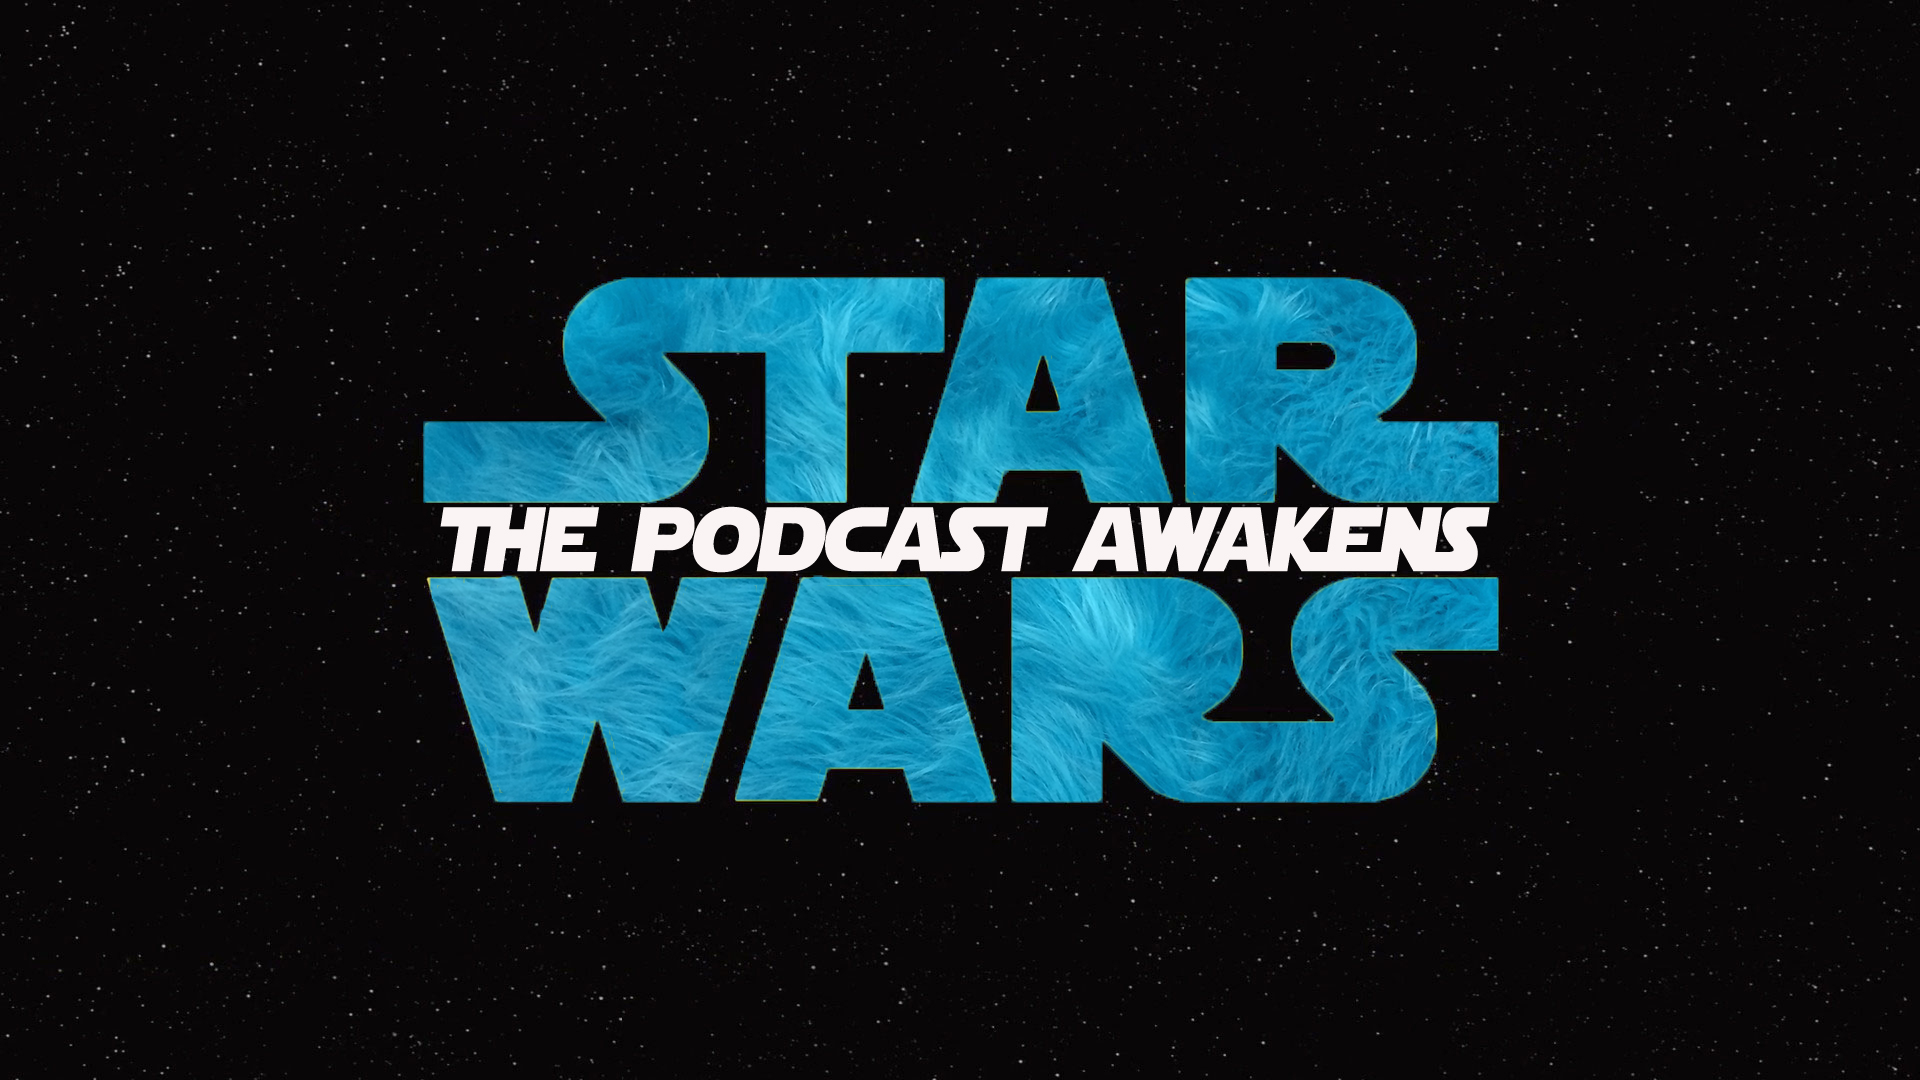 Star Wars Special - Getting Felt Up - The Podcast Awakens